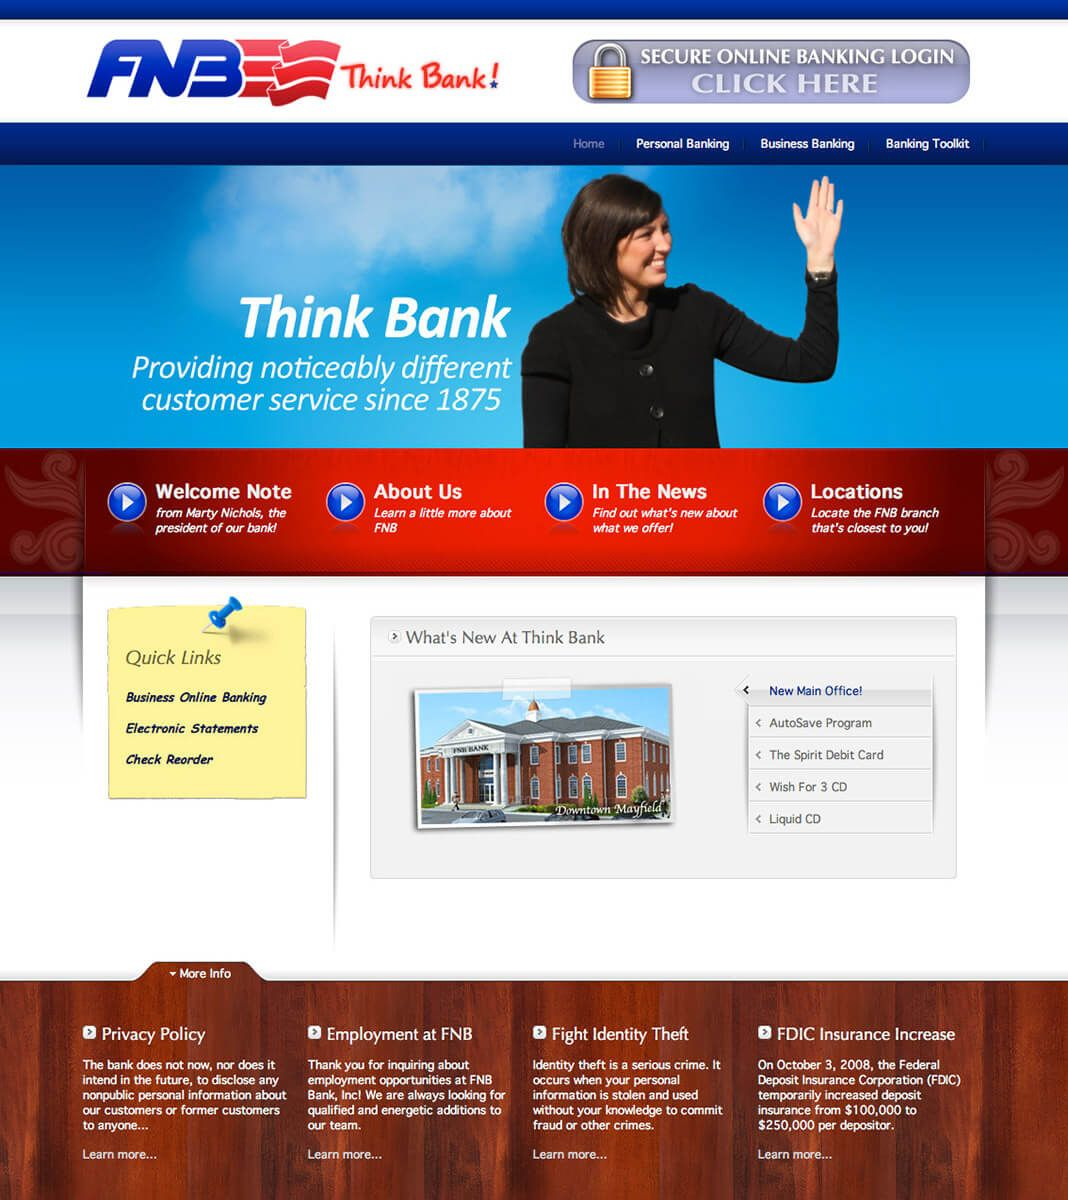 FNB Bank website by EyeSite Creations